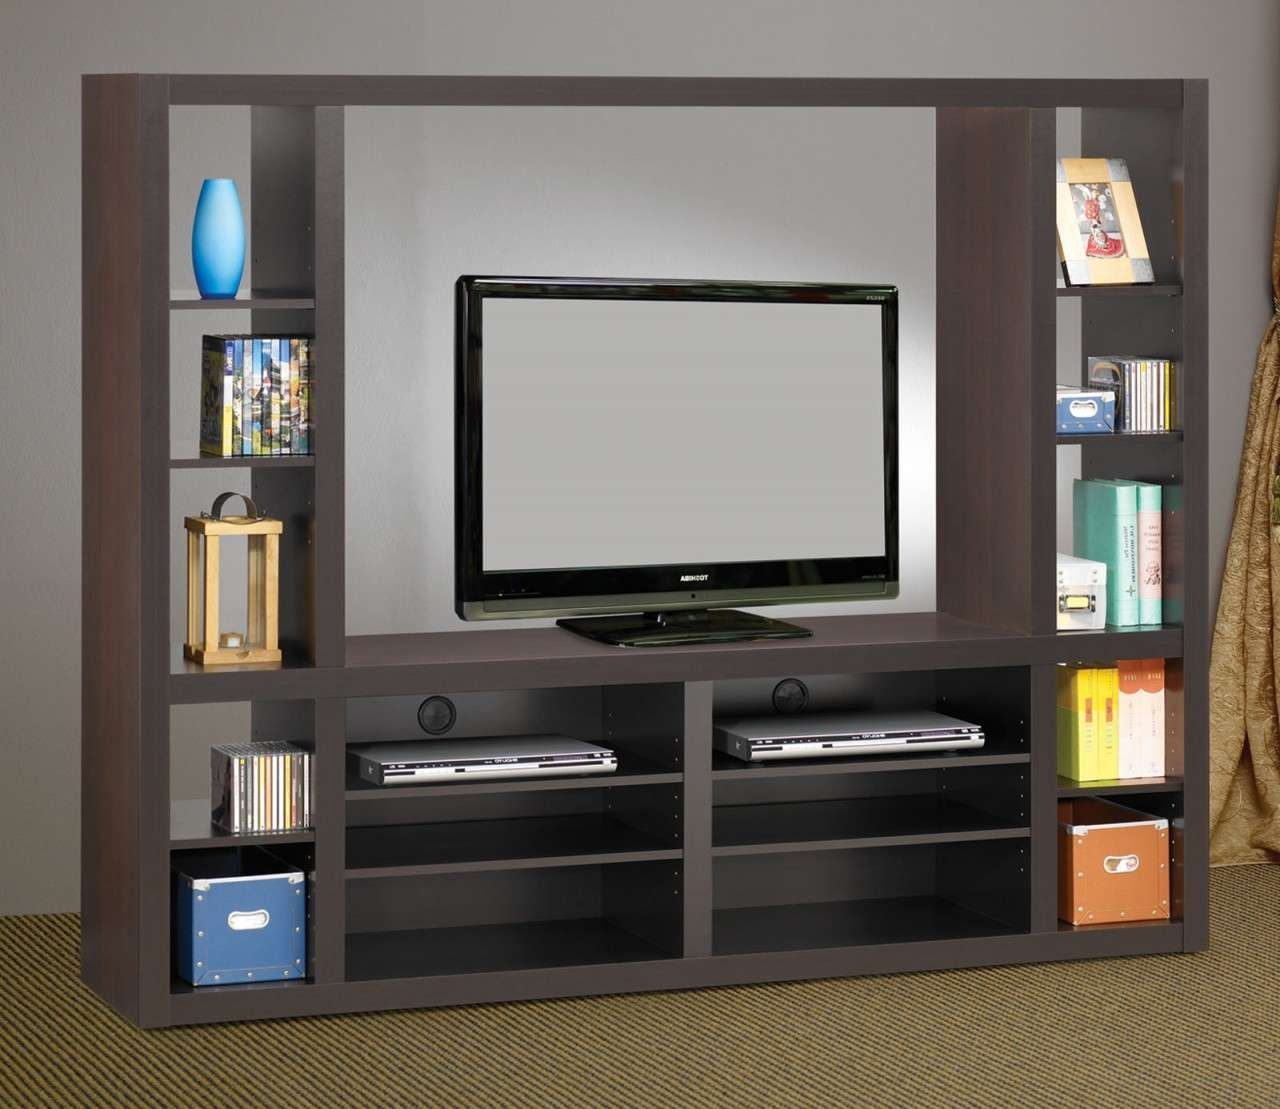 Flat Screen Tv Wall Unit Idea – Wall Units Design Ideas Throughout Wall Mounted Tv Cabinets For Flat Screens (View 15 of 20)